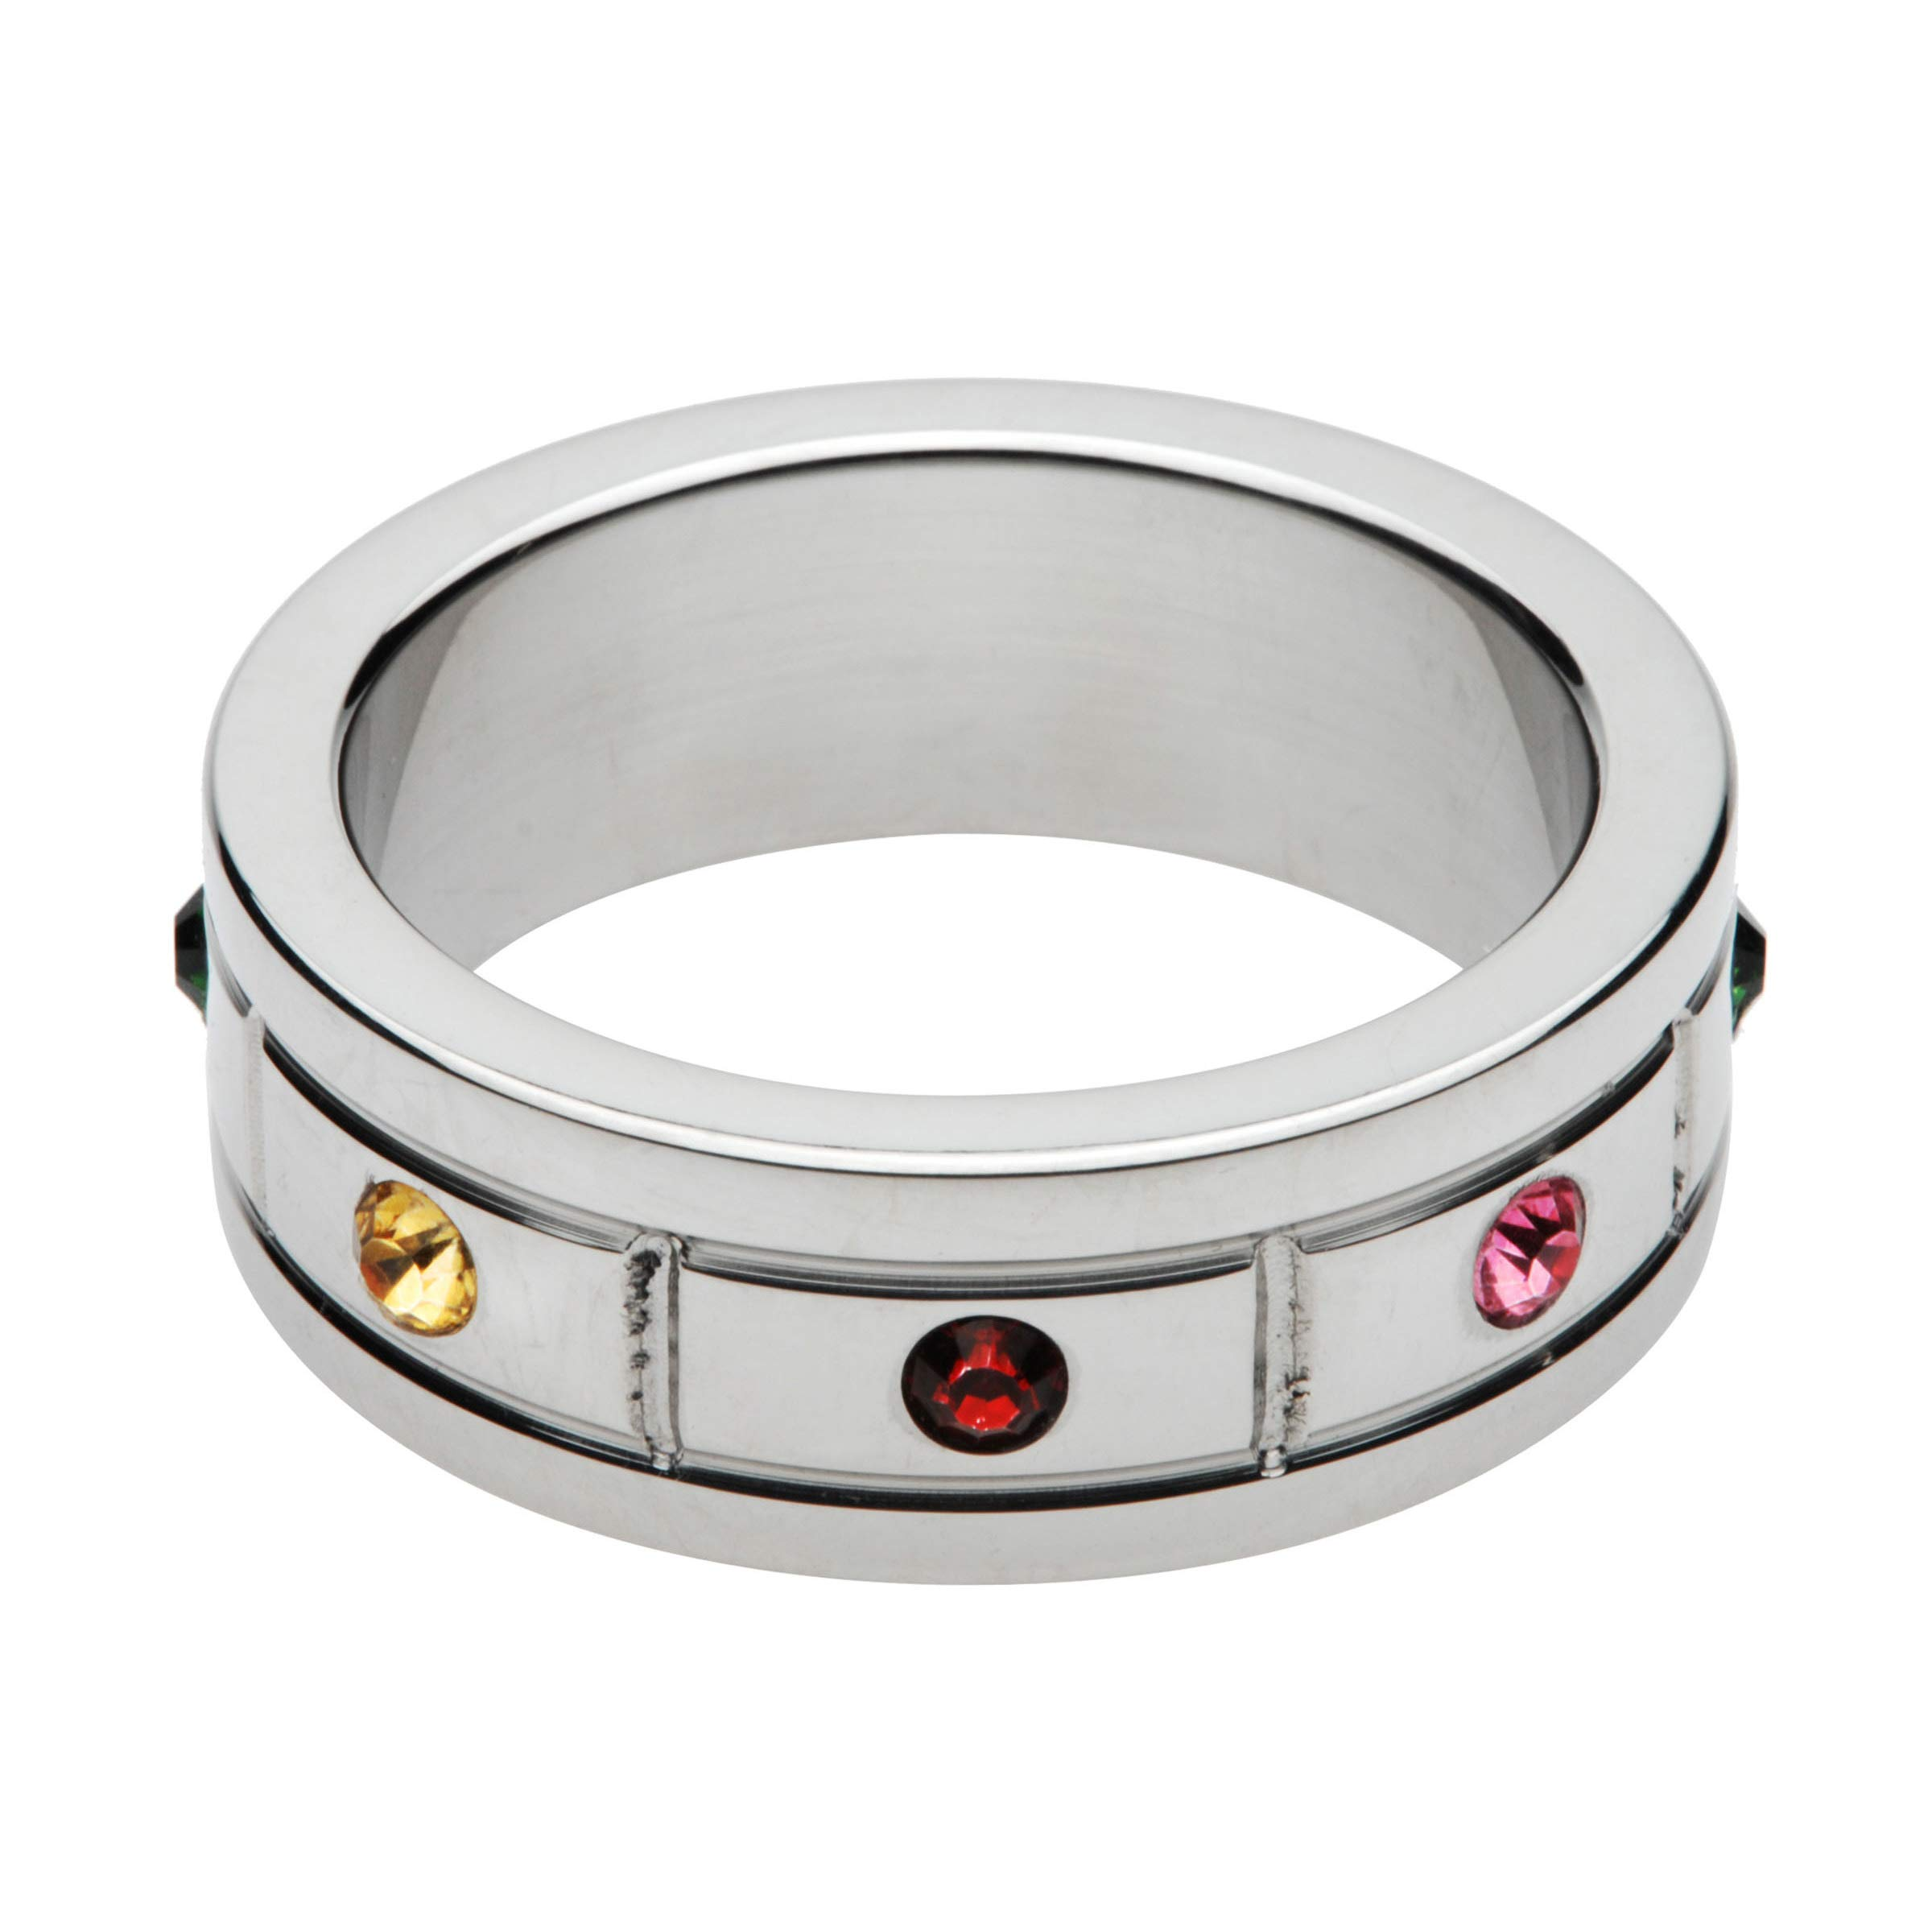 Master Series Jeweled Cock Ring, 1.95 Inch